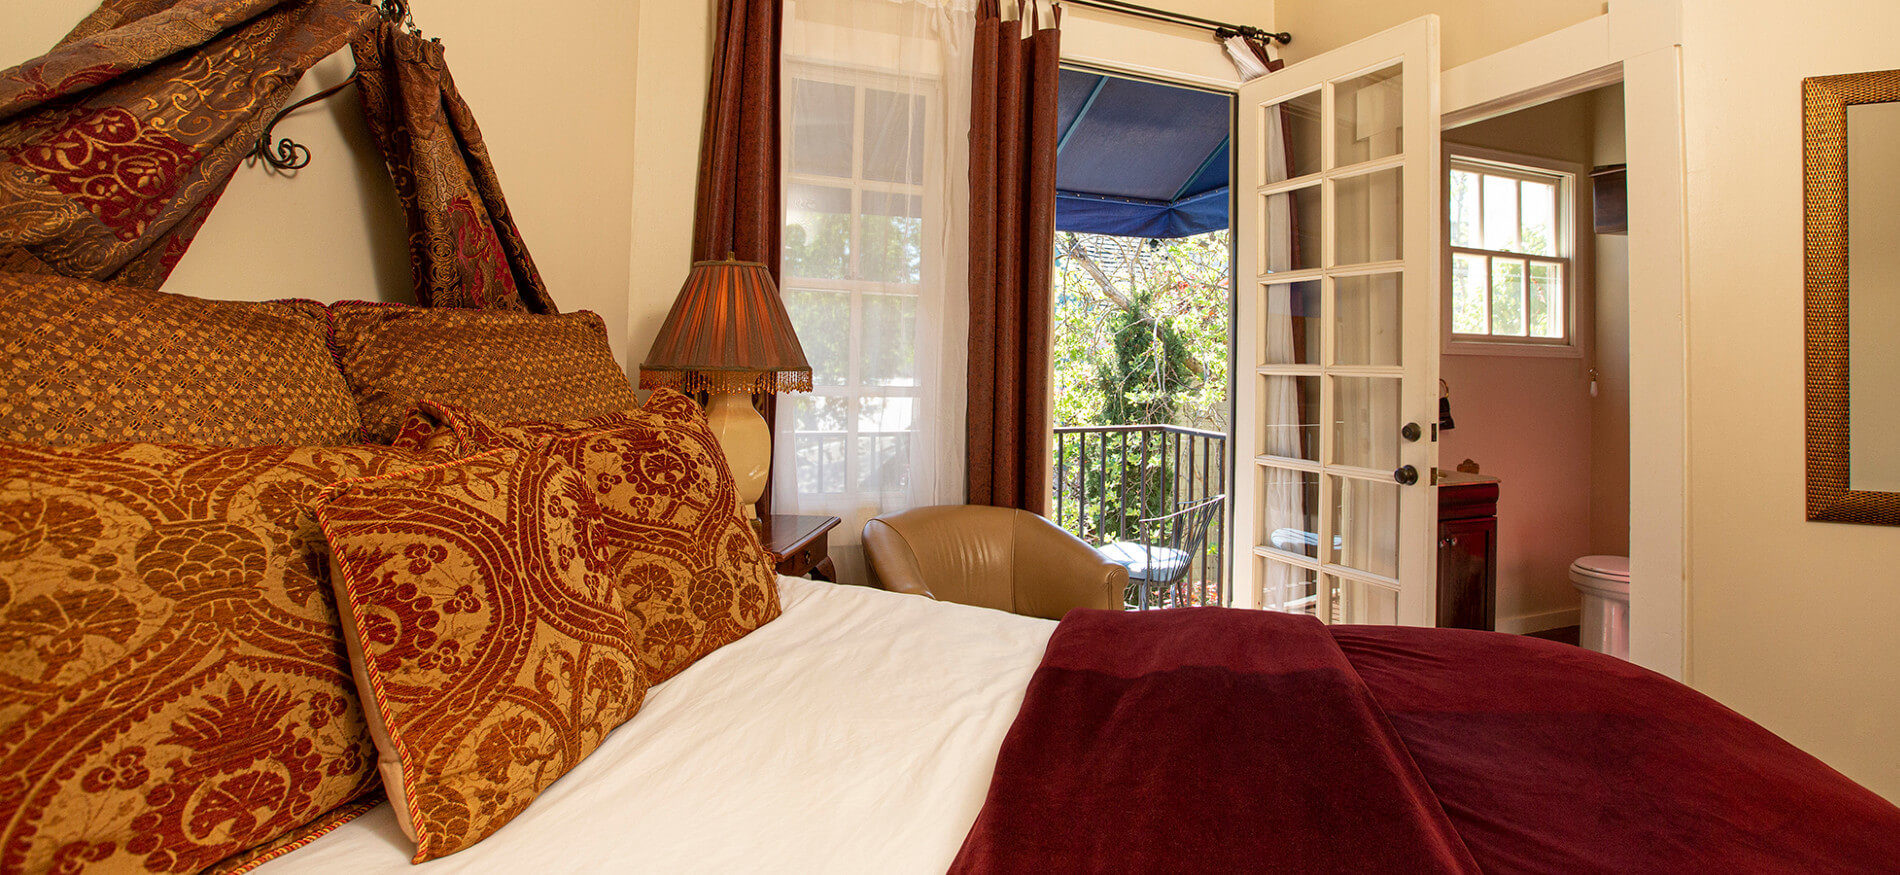 Close up of bed with rich red and gold pillows and wine colored bedspread, bedside lamp, leather chair and French doors